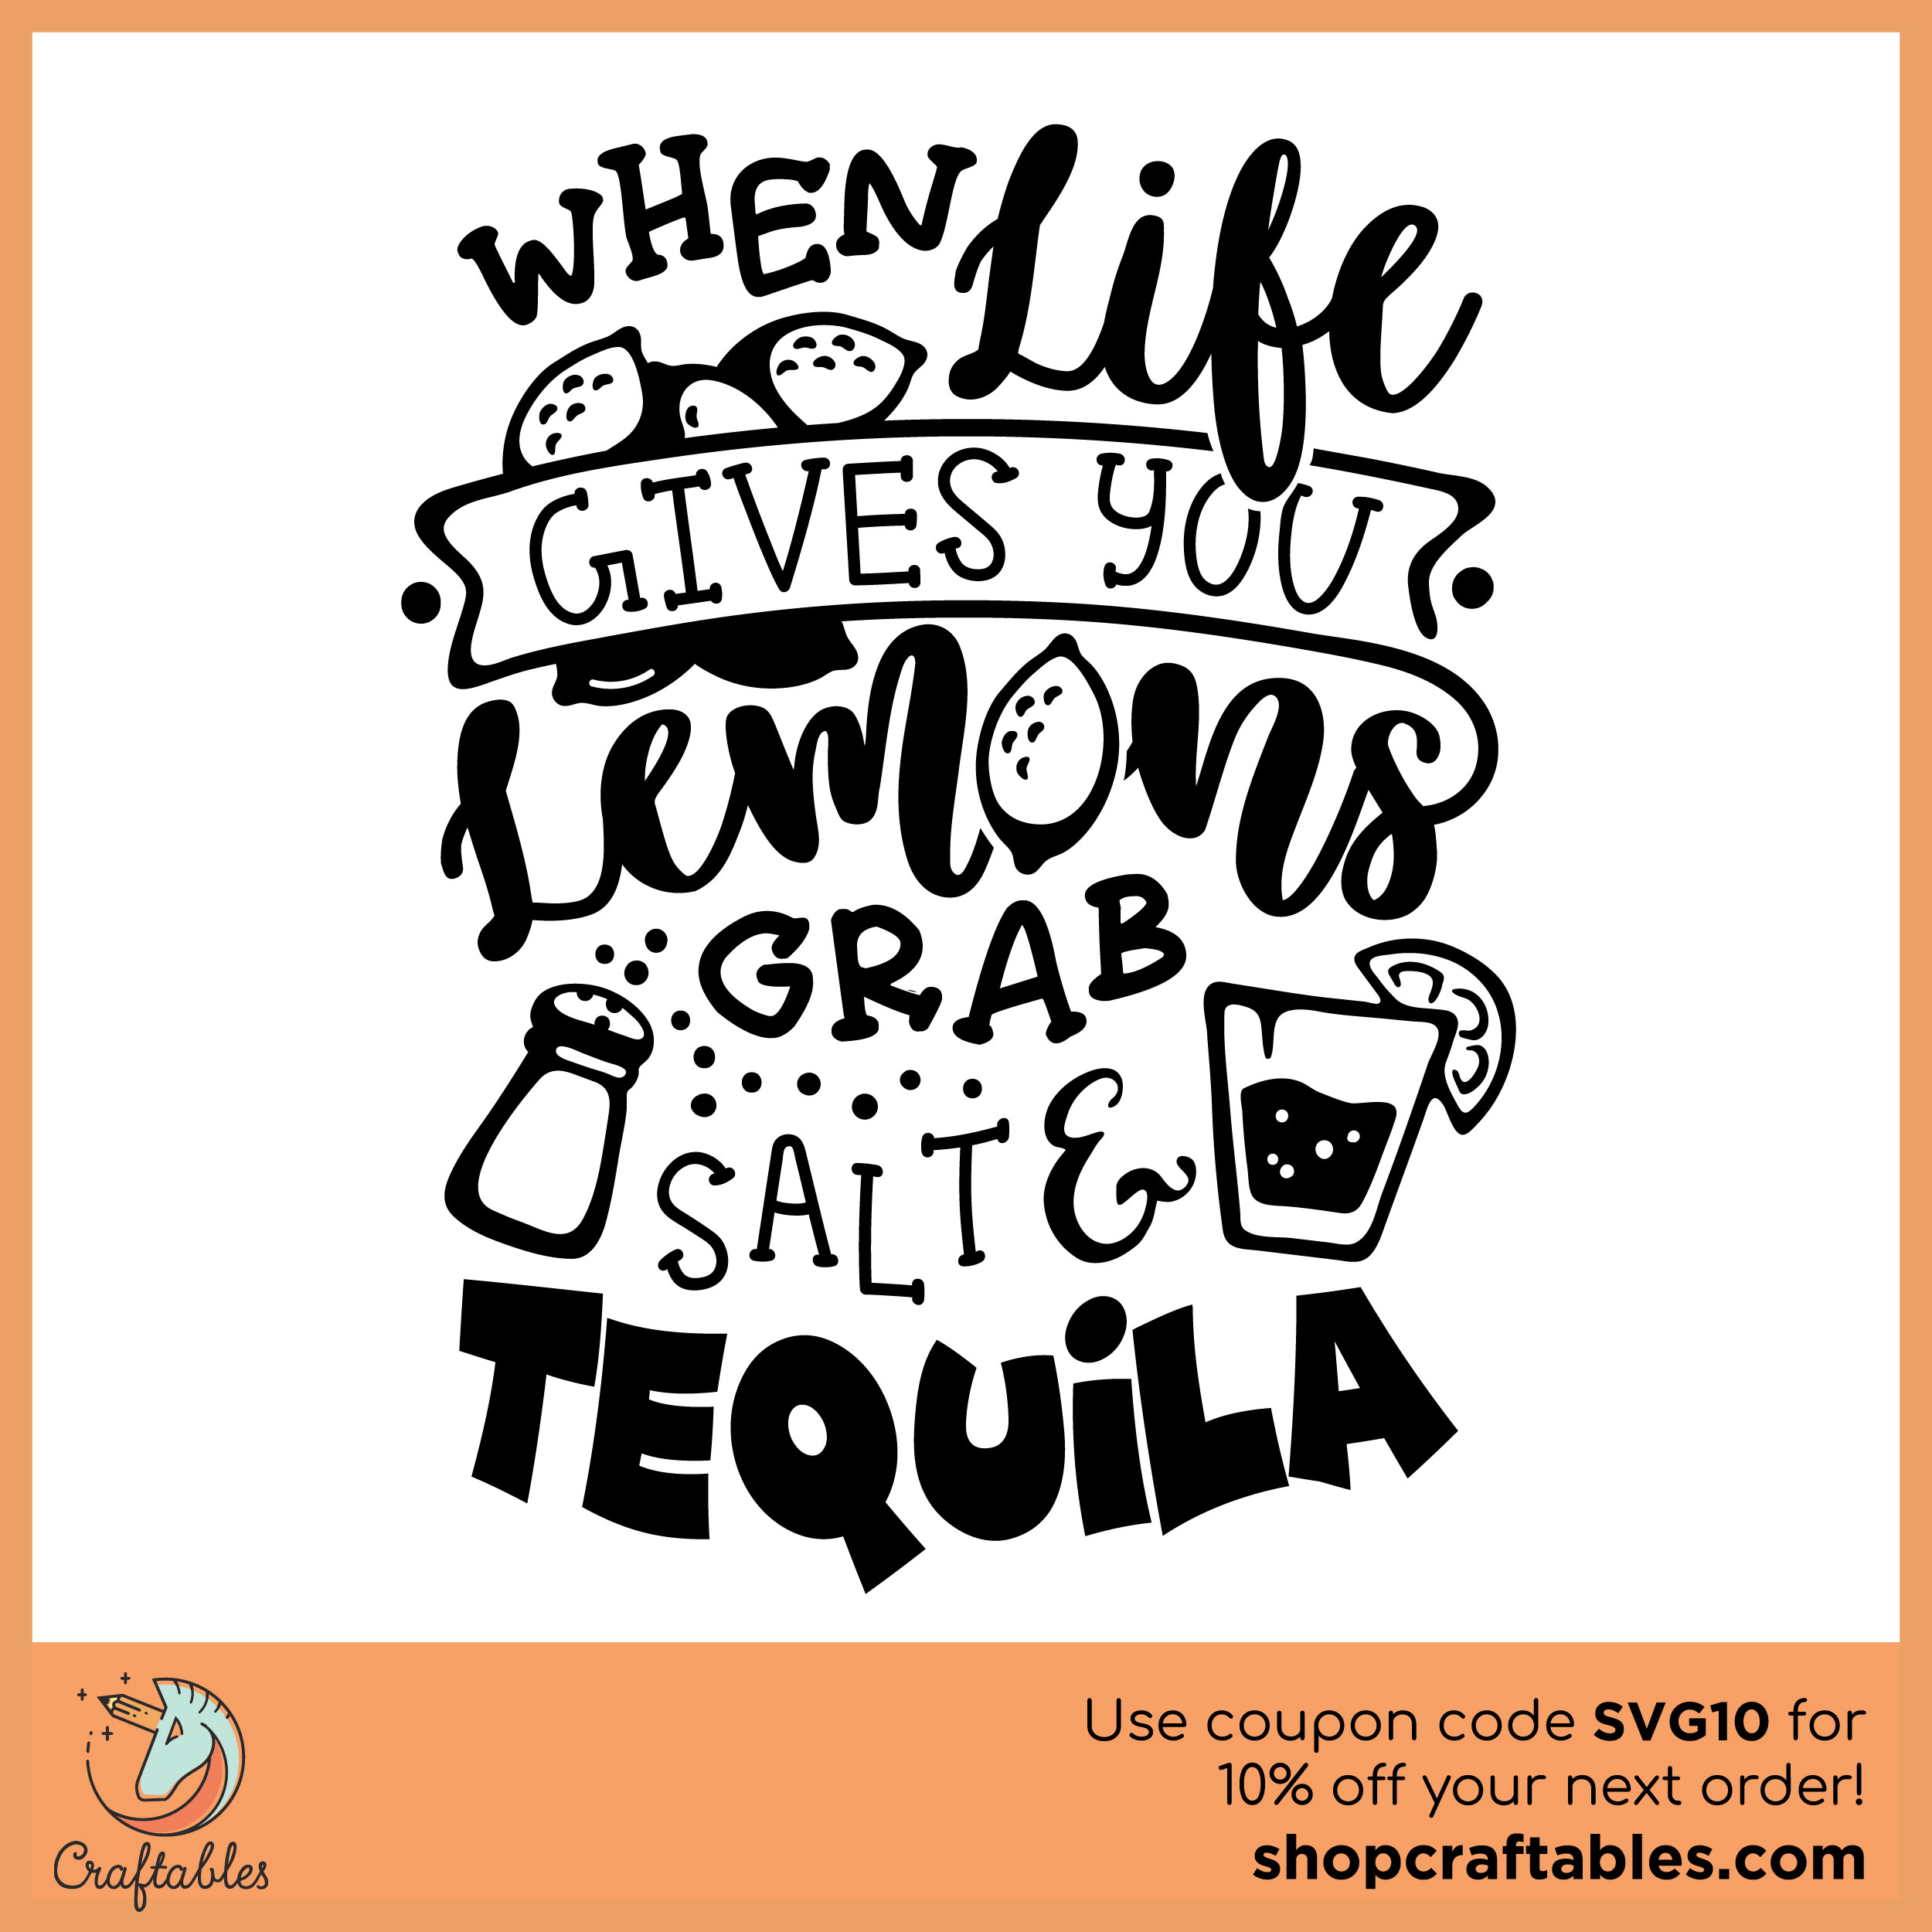 Free When Life Gives You Lemons Grab Salt And Tequila Svg Cut File E Craftables